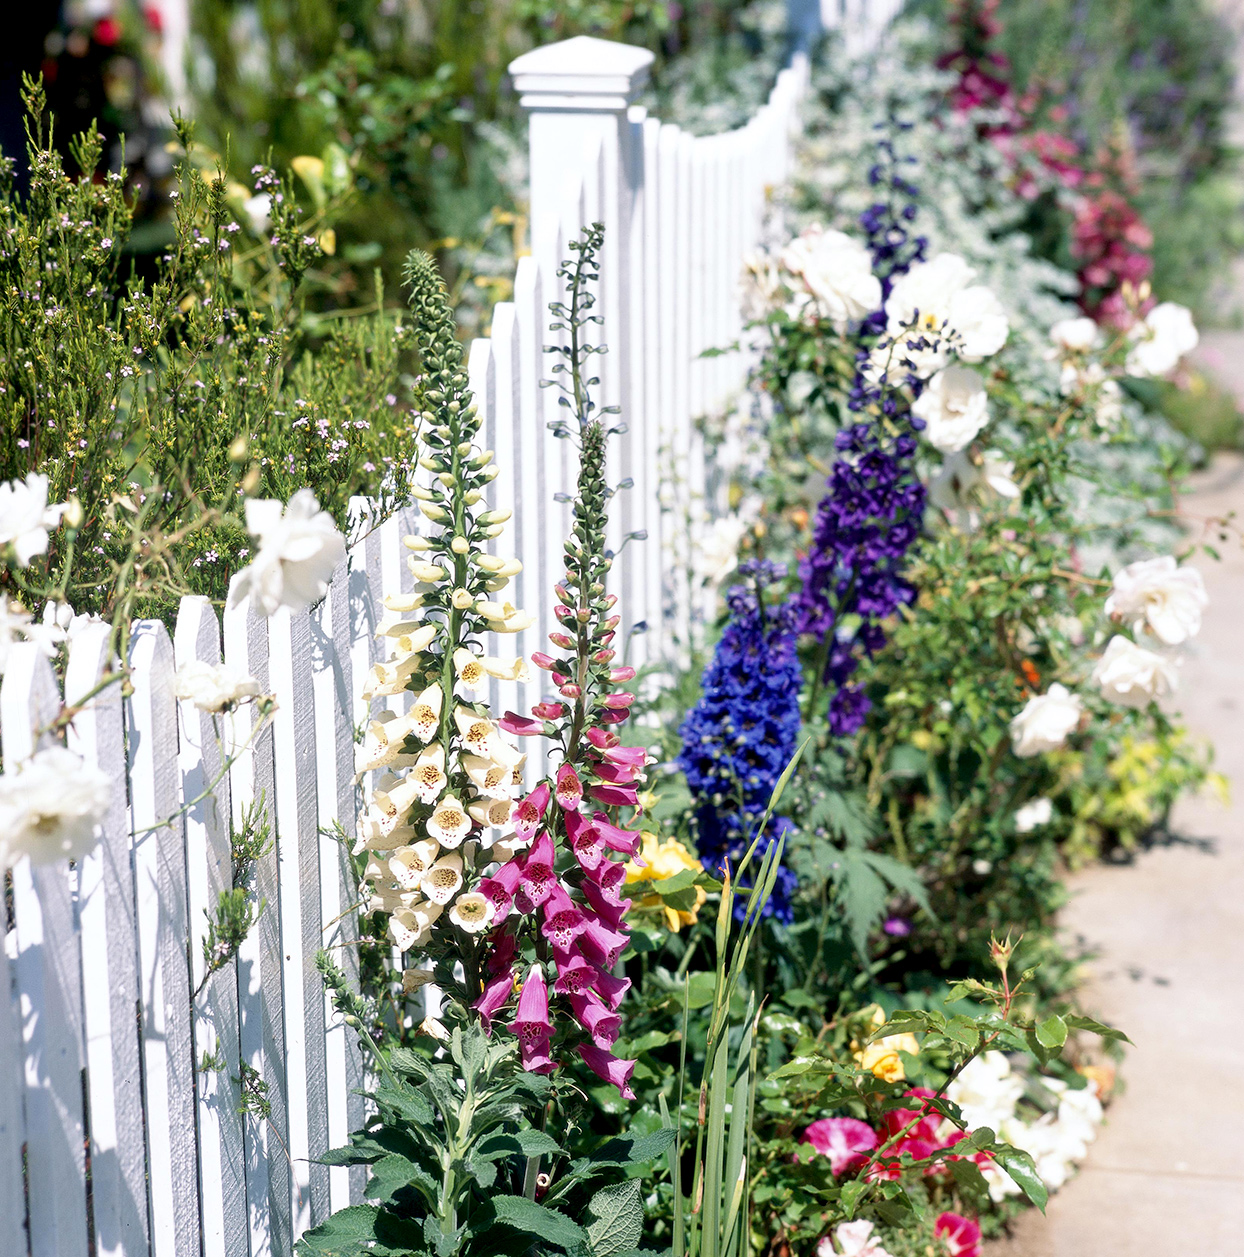 Delphinium in front of white picket fence